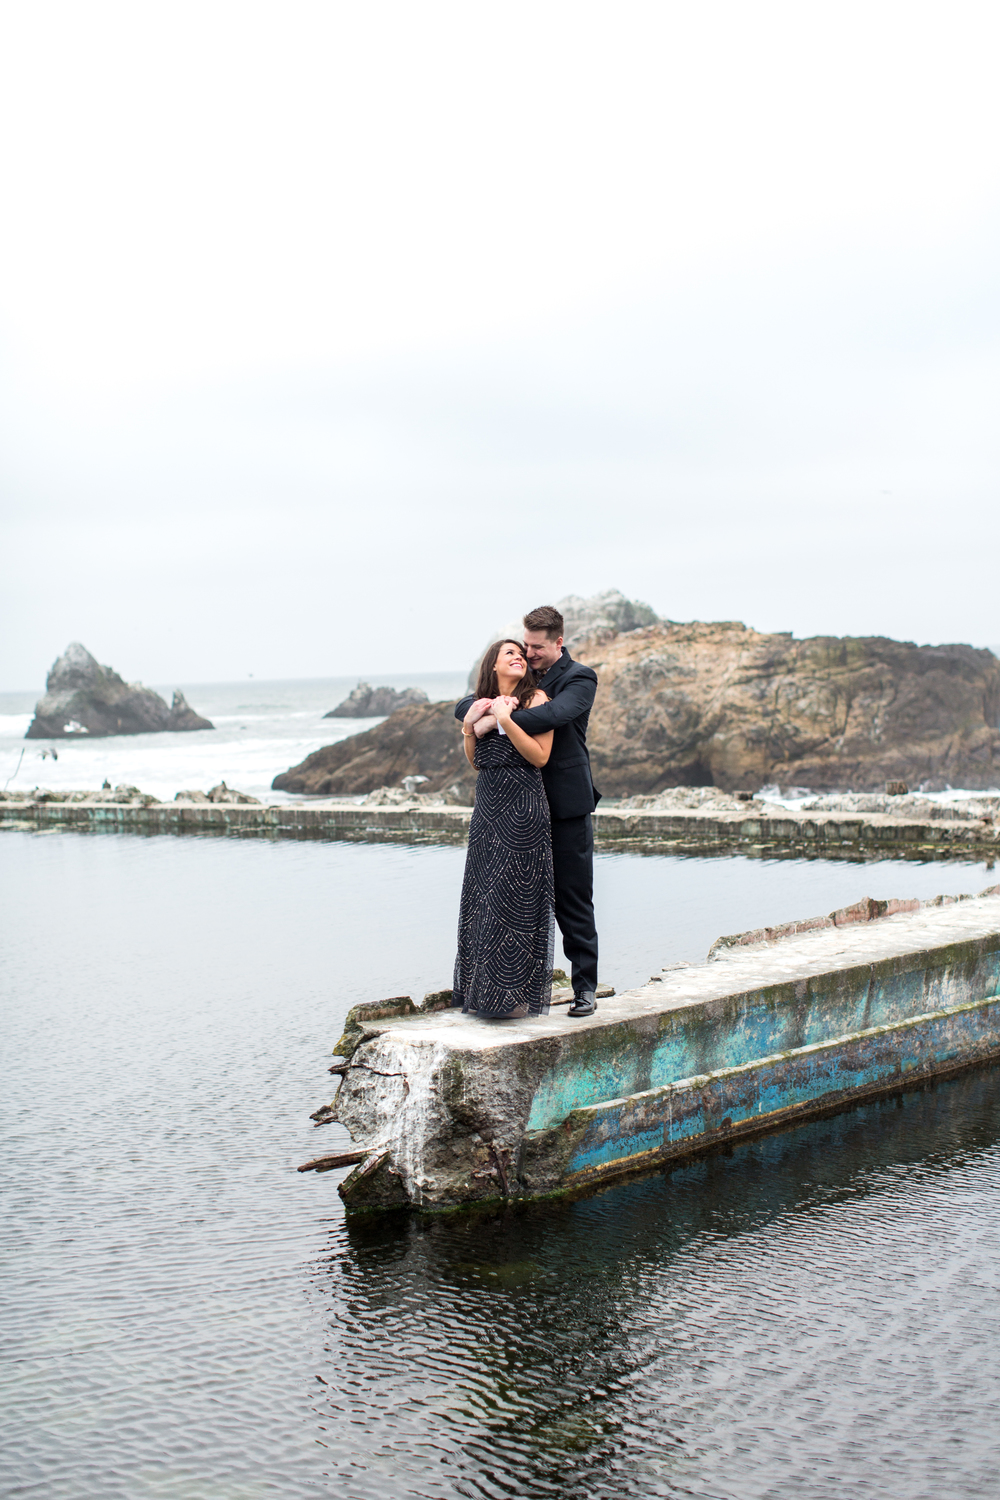 sutro-baths-engagement-photos-88.jpg